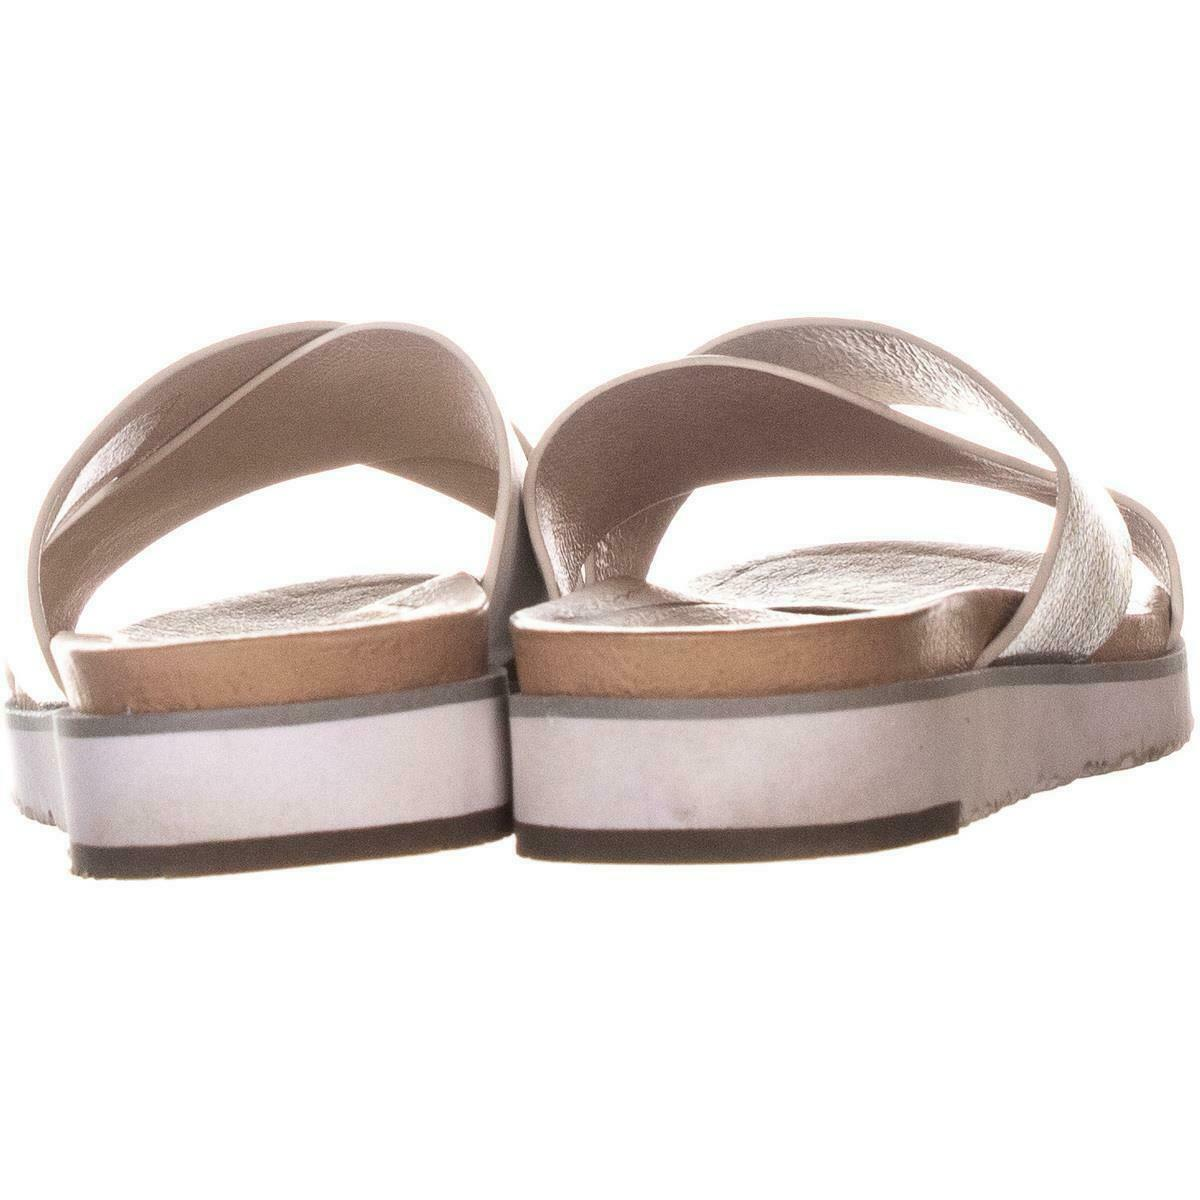 58f8a68feae UGG Kari Slide Sandals 394, Silver, 8.5 US / and 50 similar items